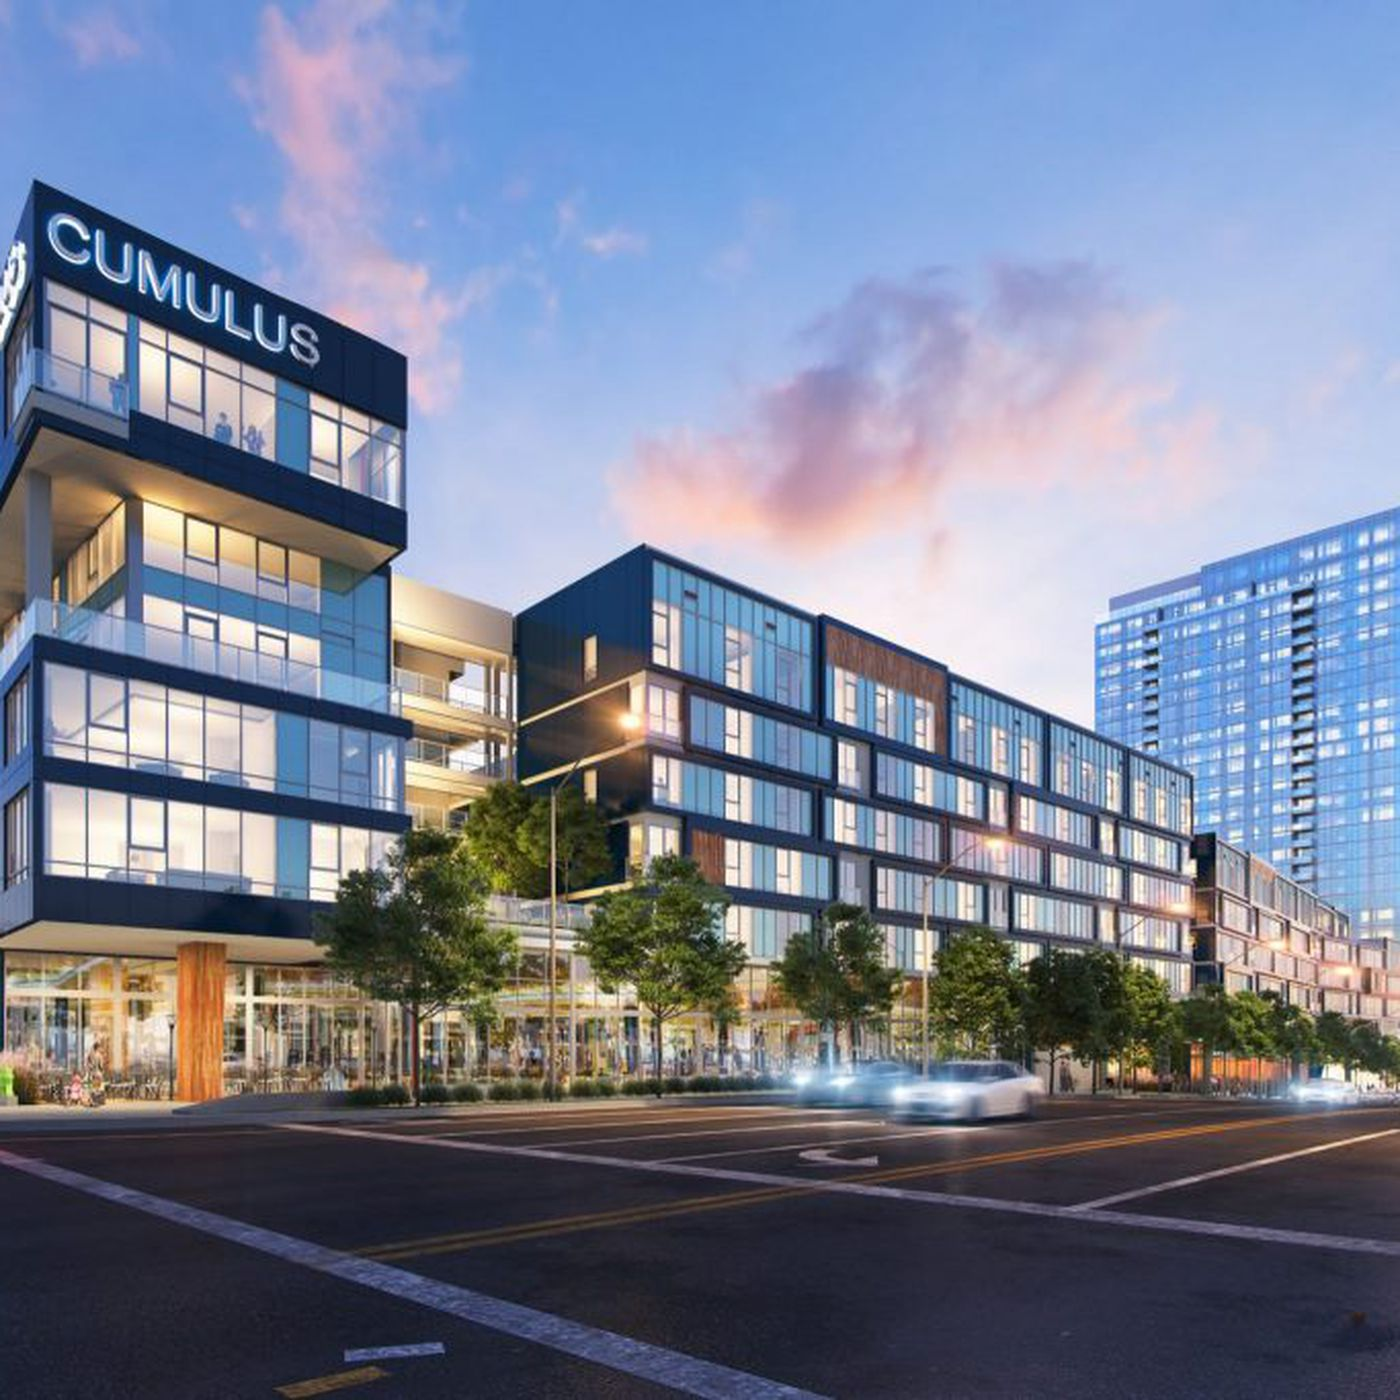 Whole Foods slated to open in West Adams's Cumulus